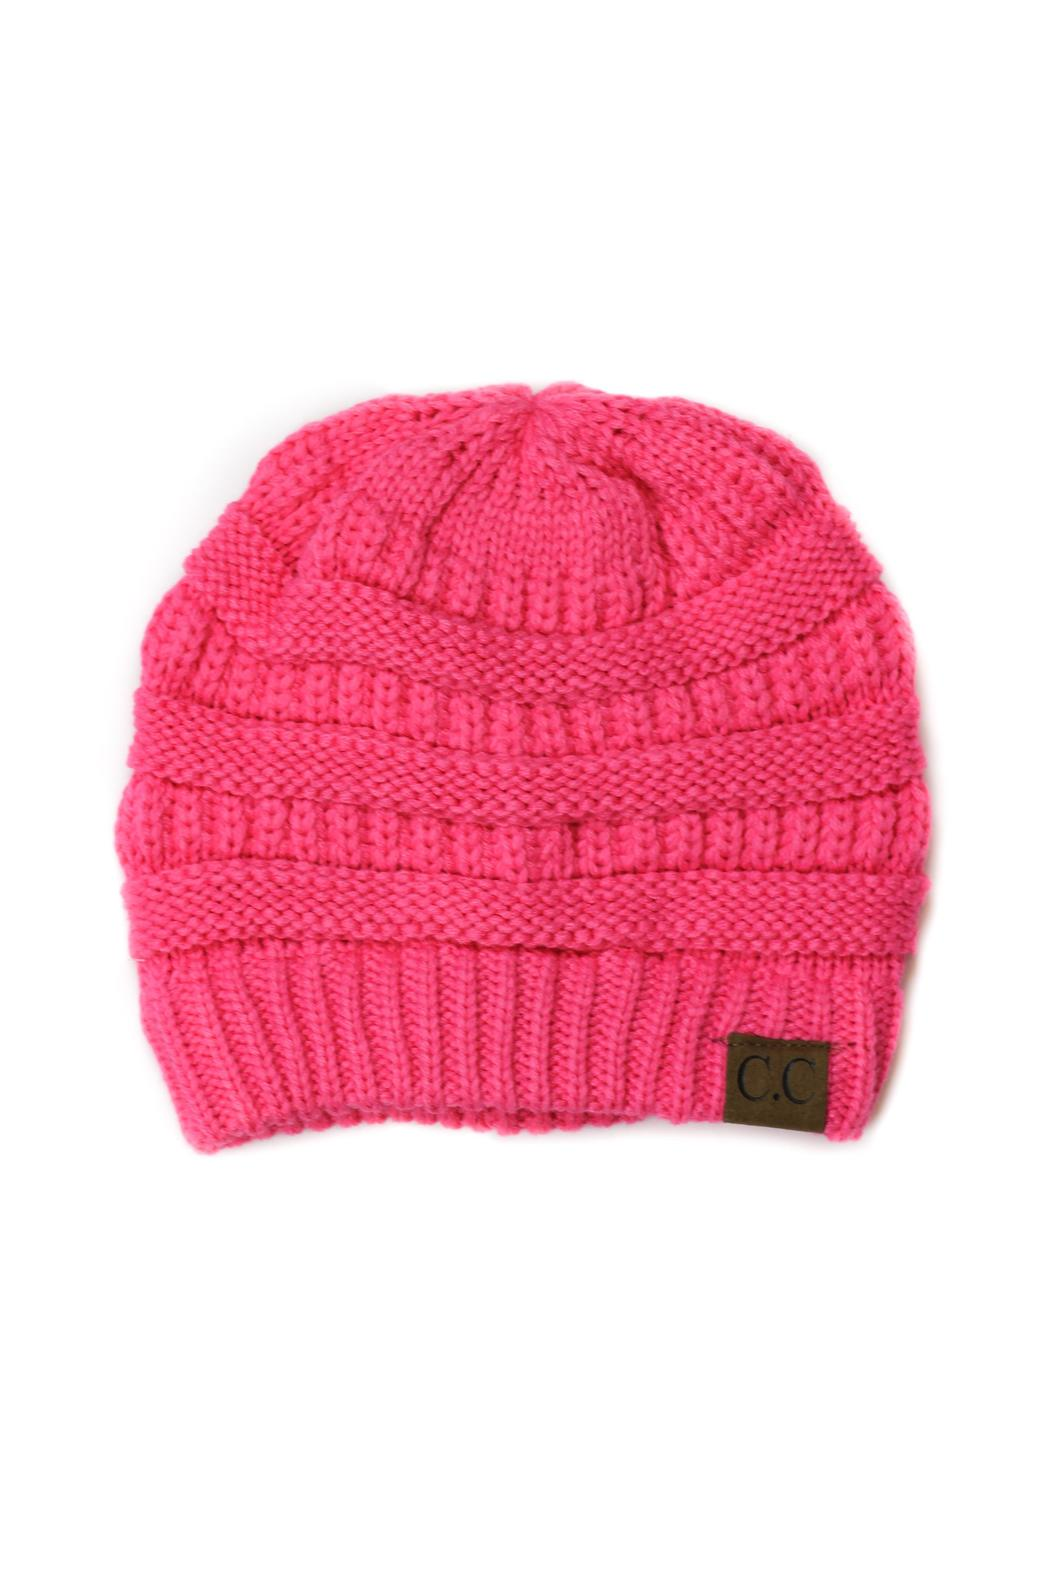 C.C Beanie Pink Beanie from Minneapolis by StyleTrolley — Shoptiques 3fb622e48af